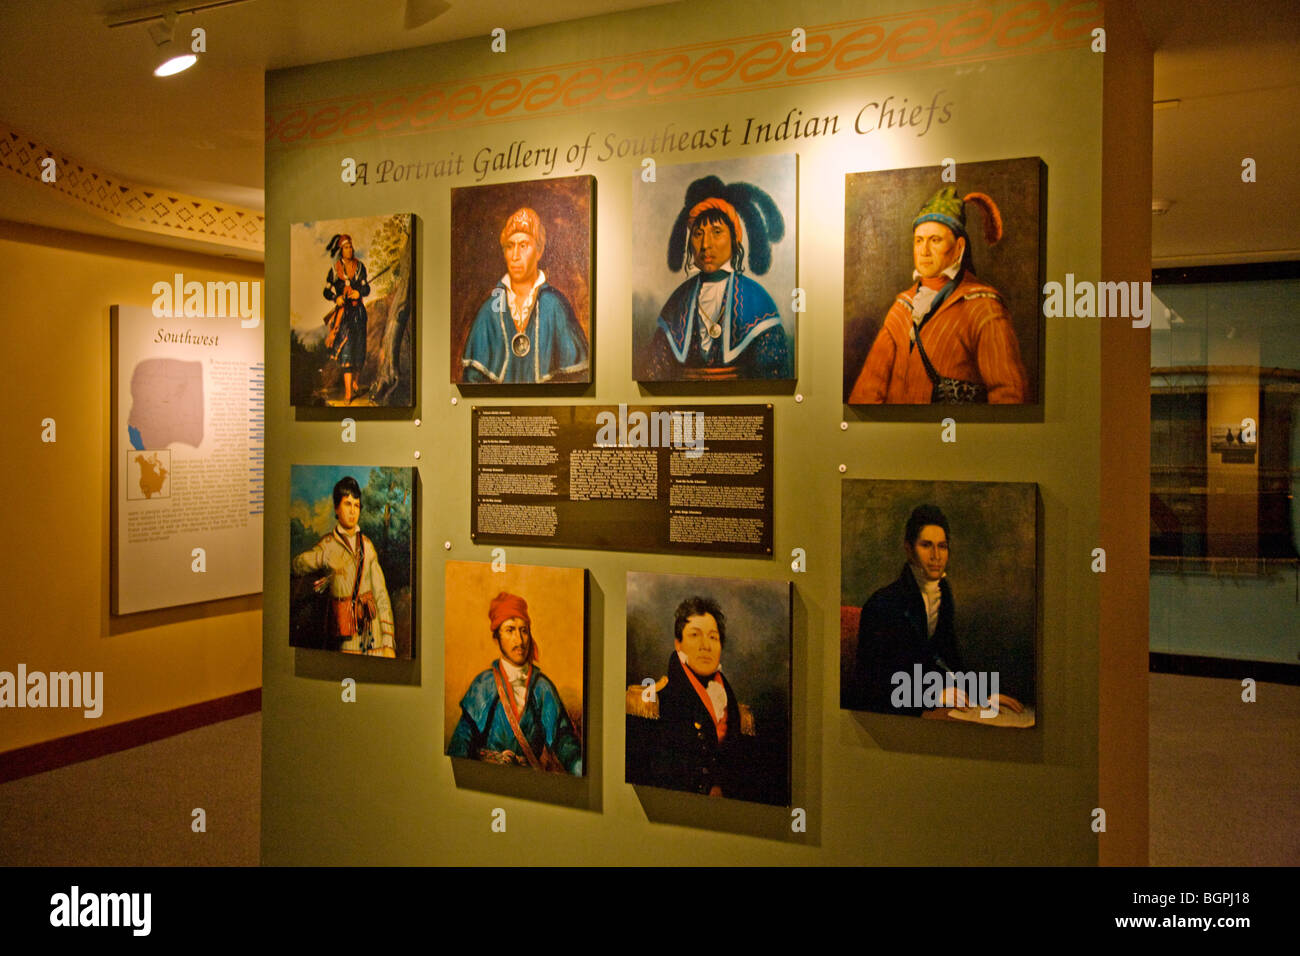 Native American Chiefs at the PEABODY MUSEUM of ARCHAEOLOGY and ETHNOLOGY at HARVARD UNIVERSITY CAMBRIDGE, MASSACHUSETTS - Stock Image